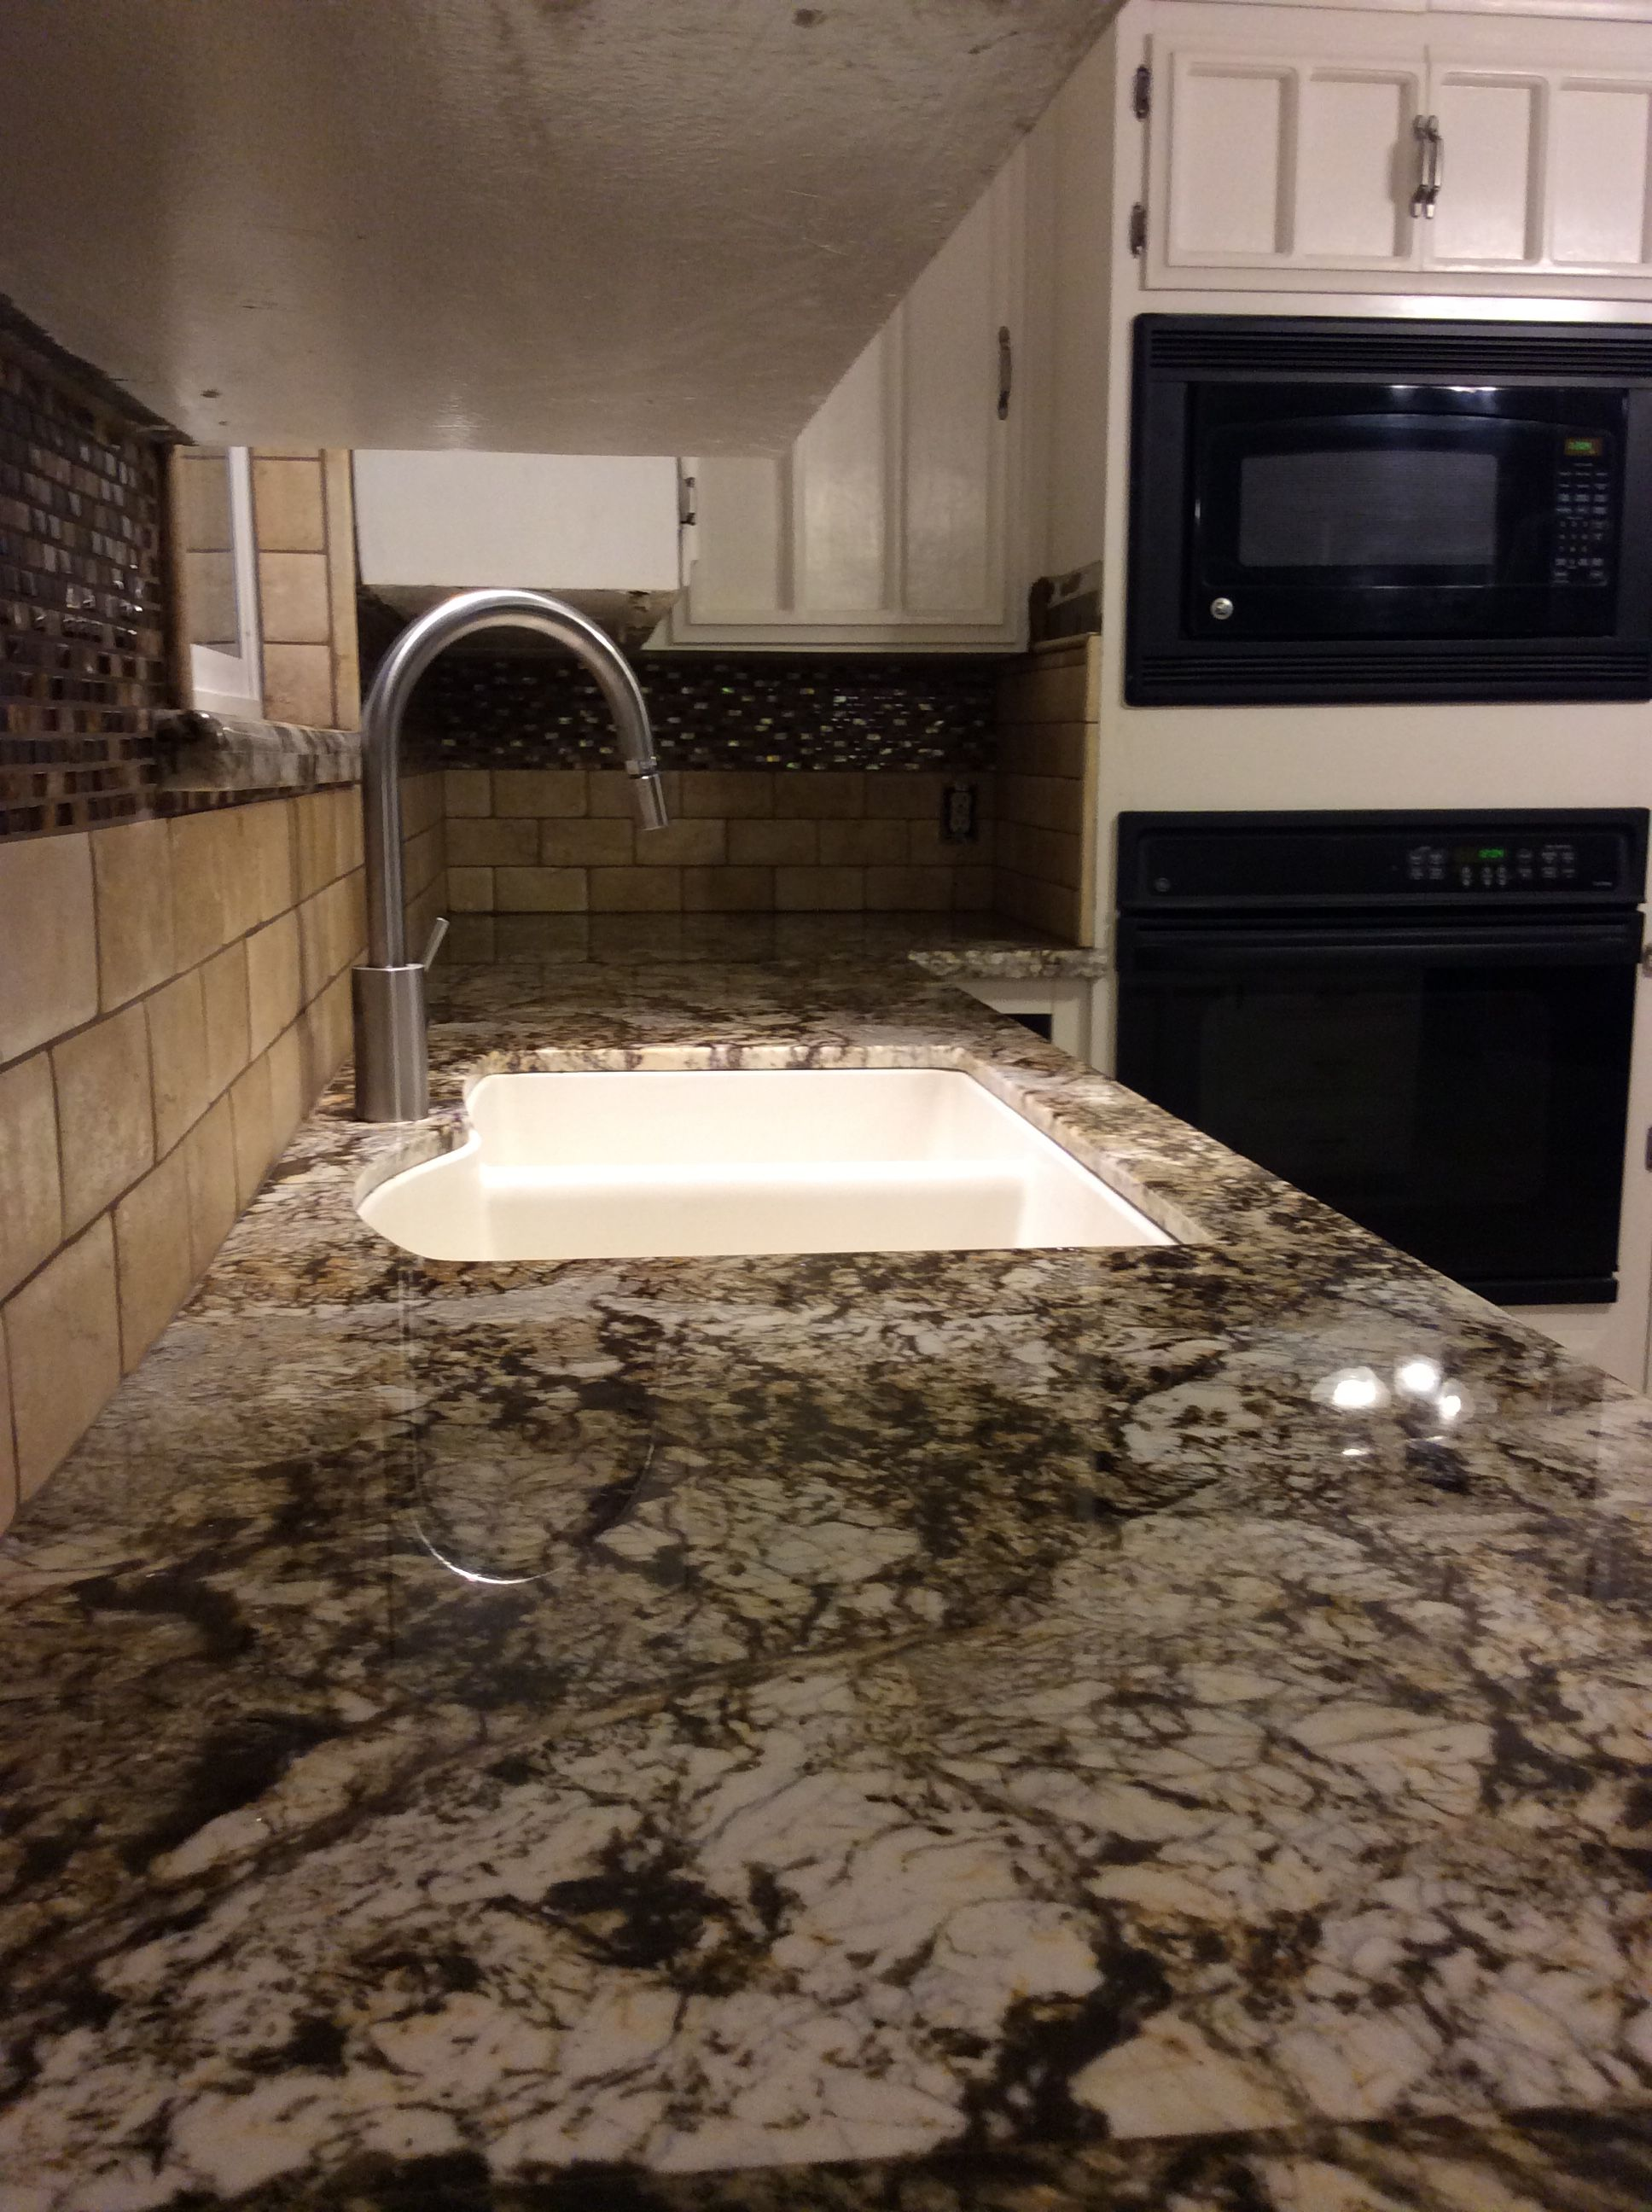 Normandy Granite Countertops From Our Fresno Location Paired With A Limestone Backsplash